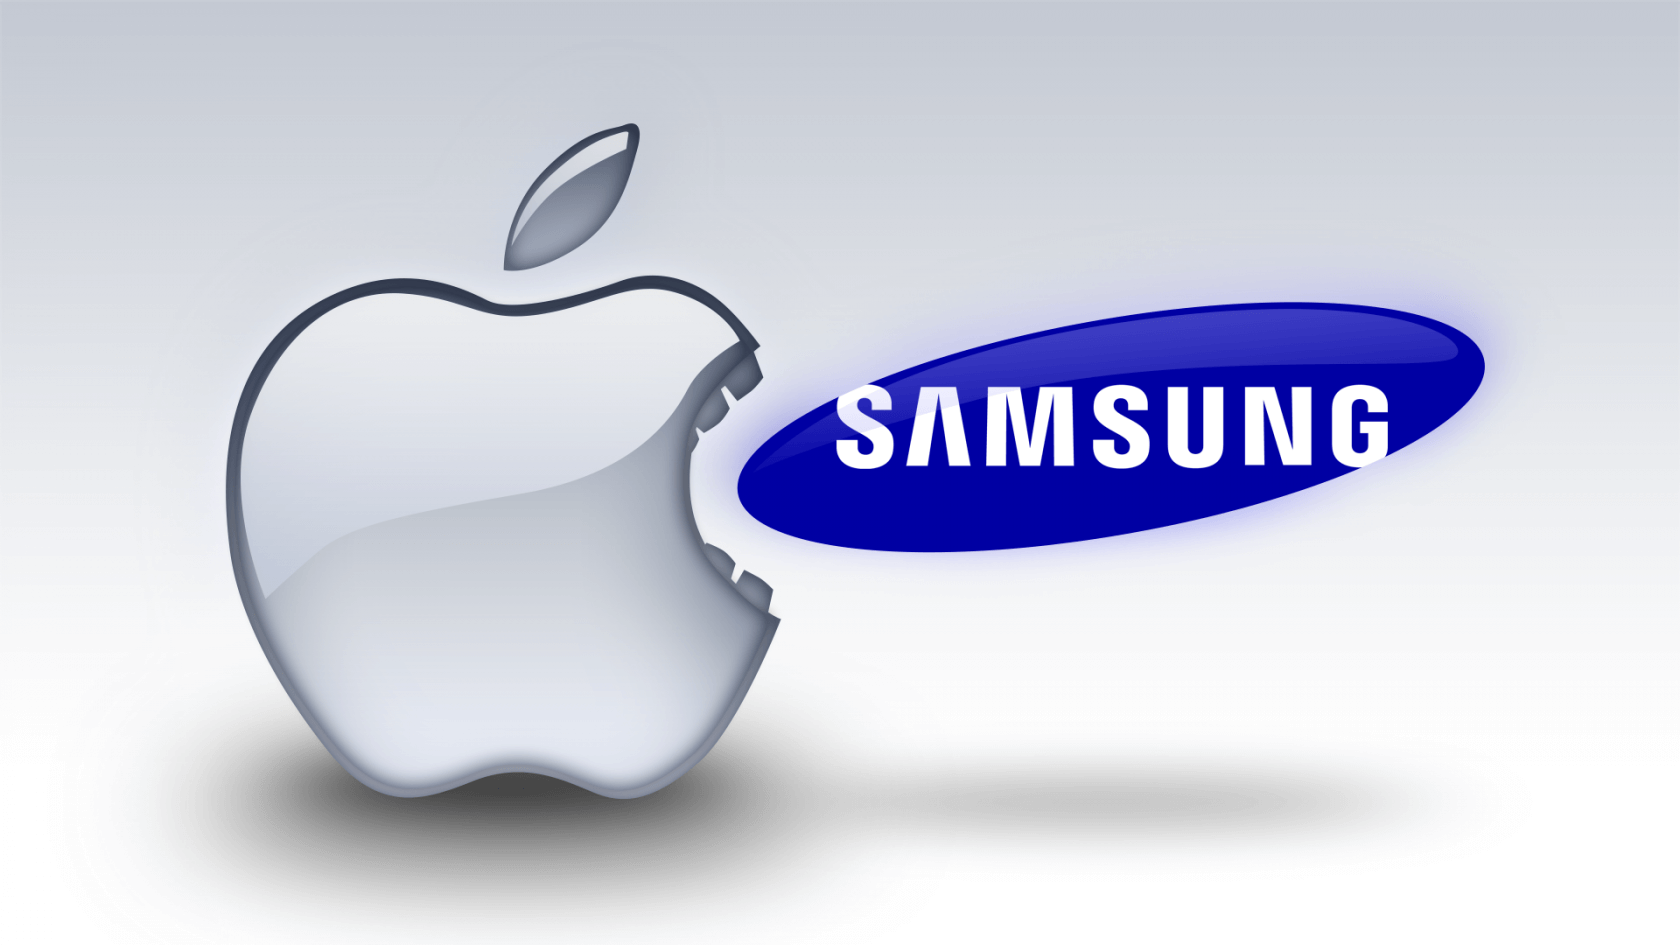 Apple demands $1 billion from Samsung over iPhone patents